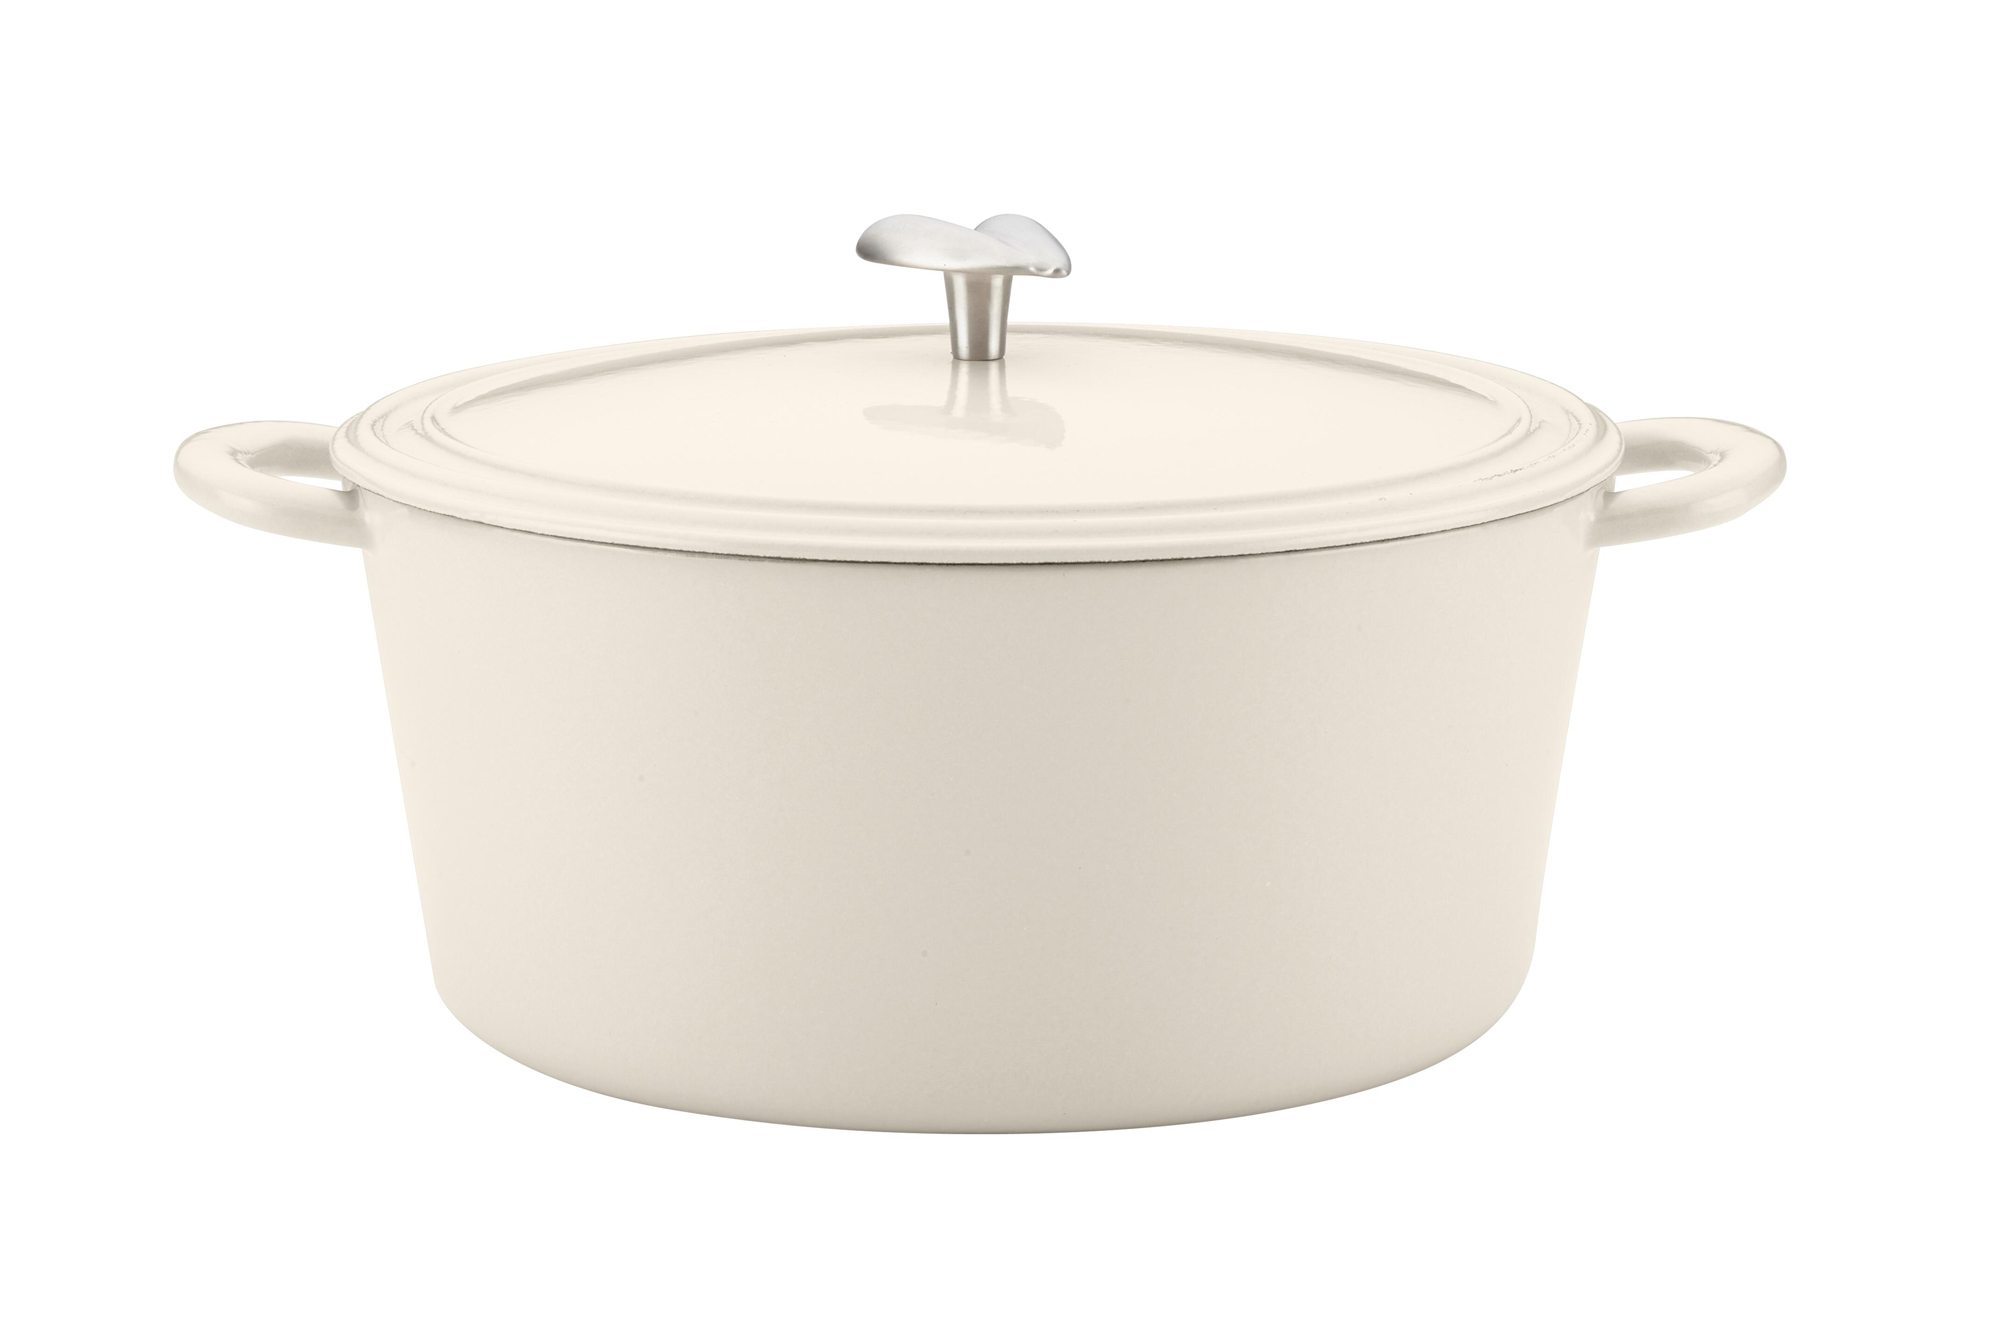 Ayesha Curry Collection Dutch Oven